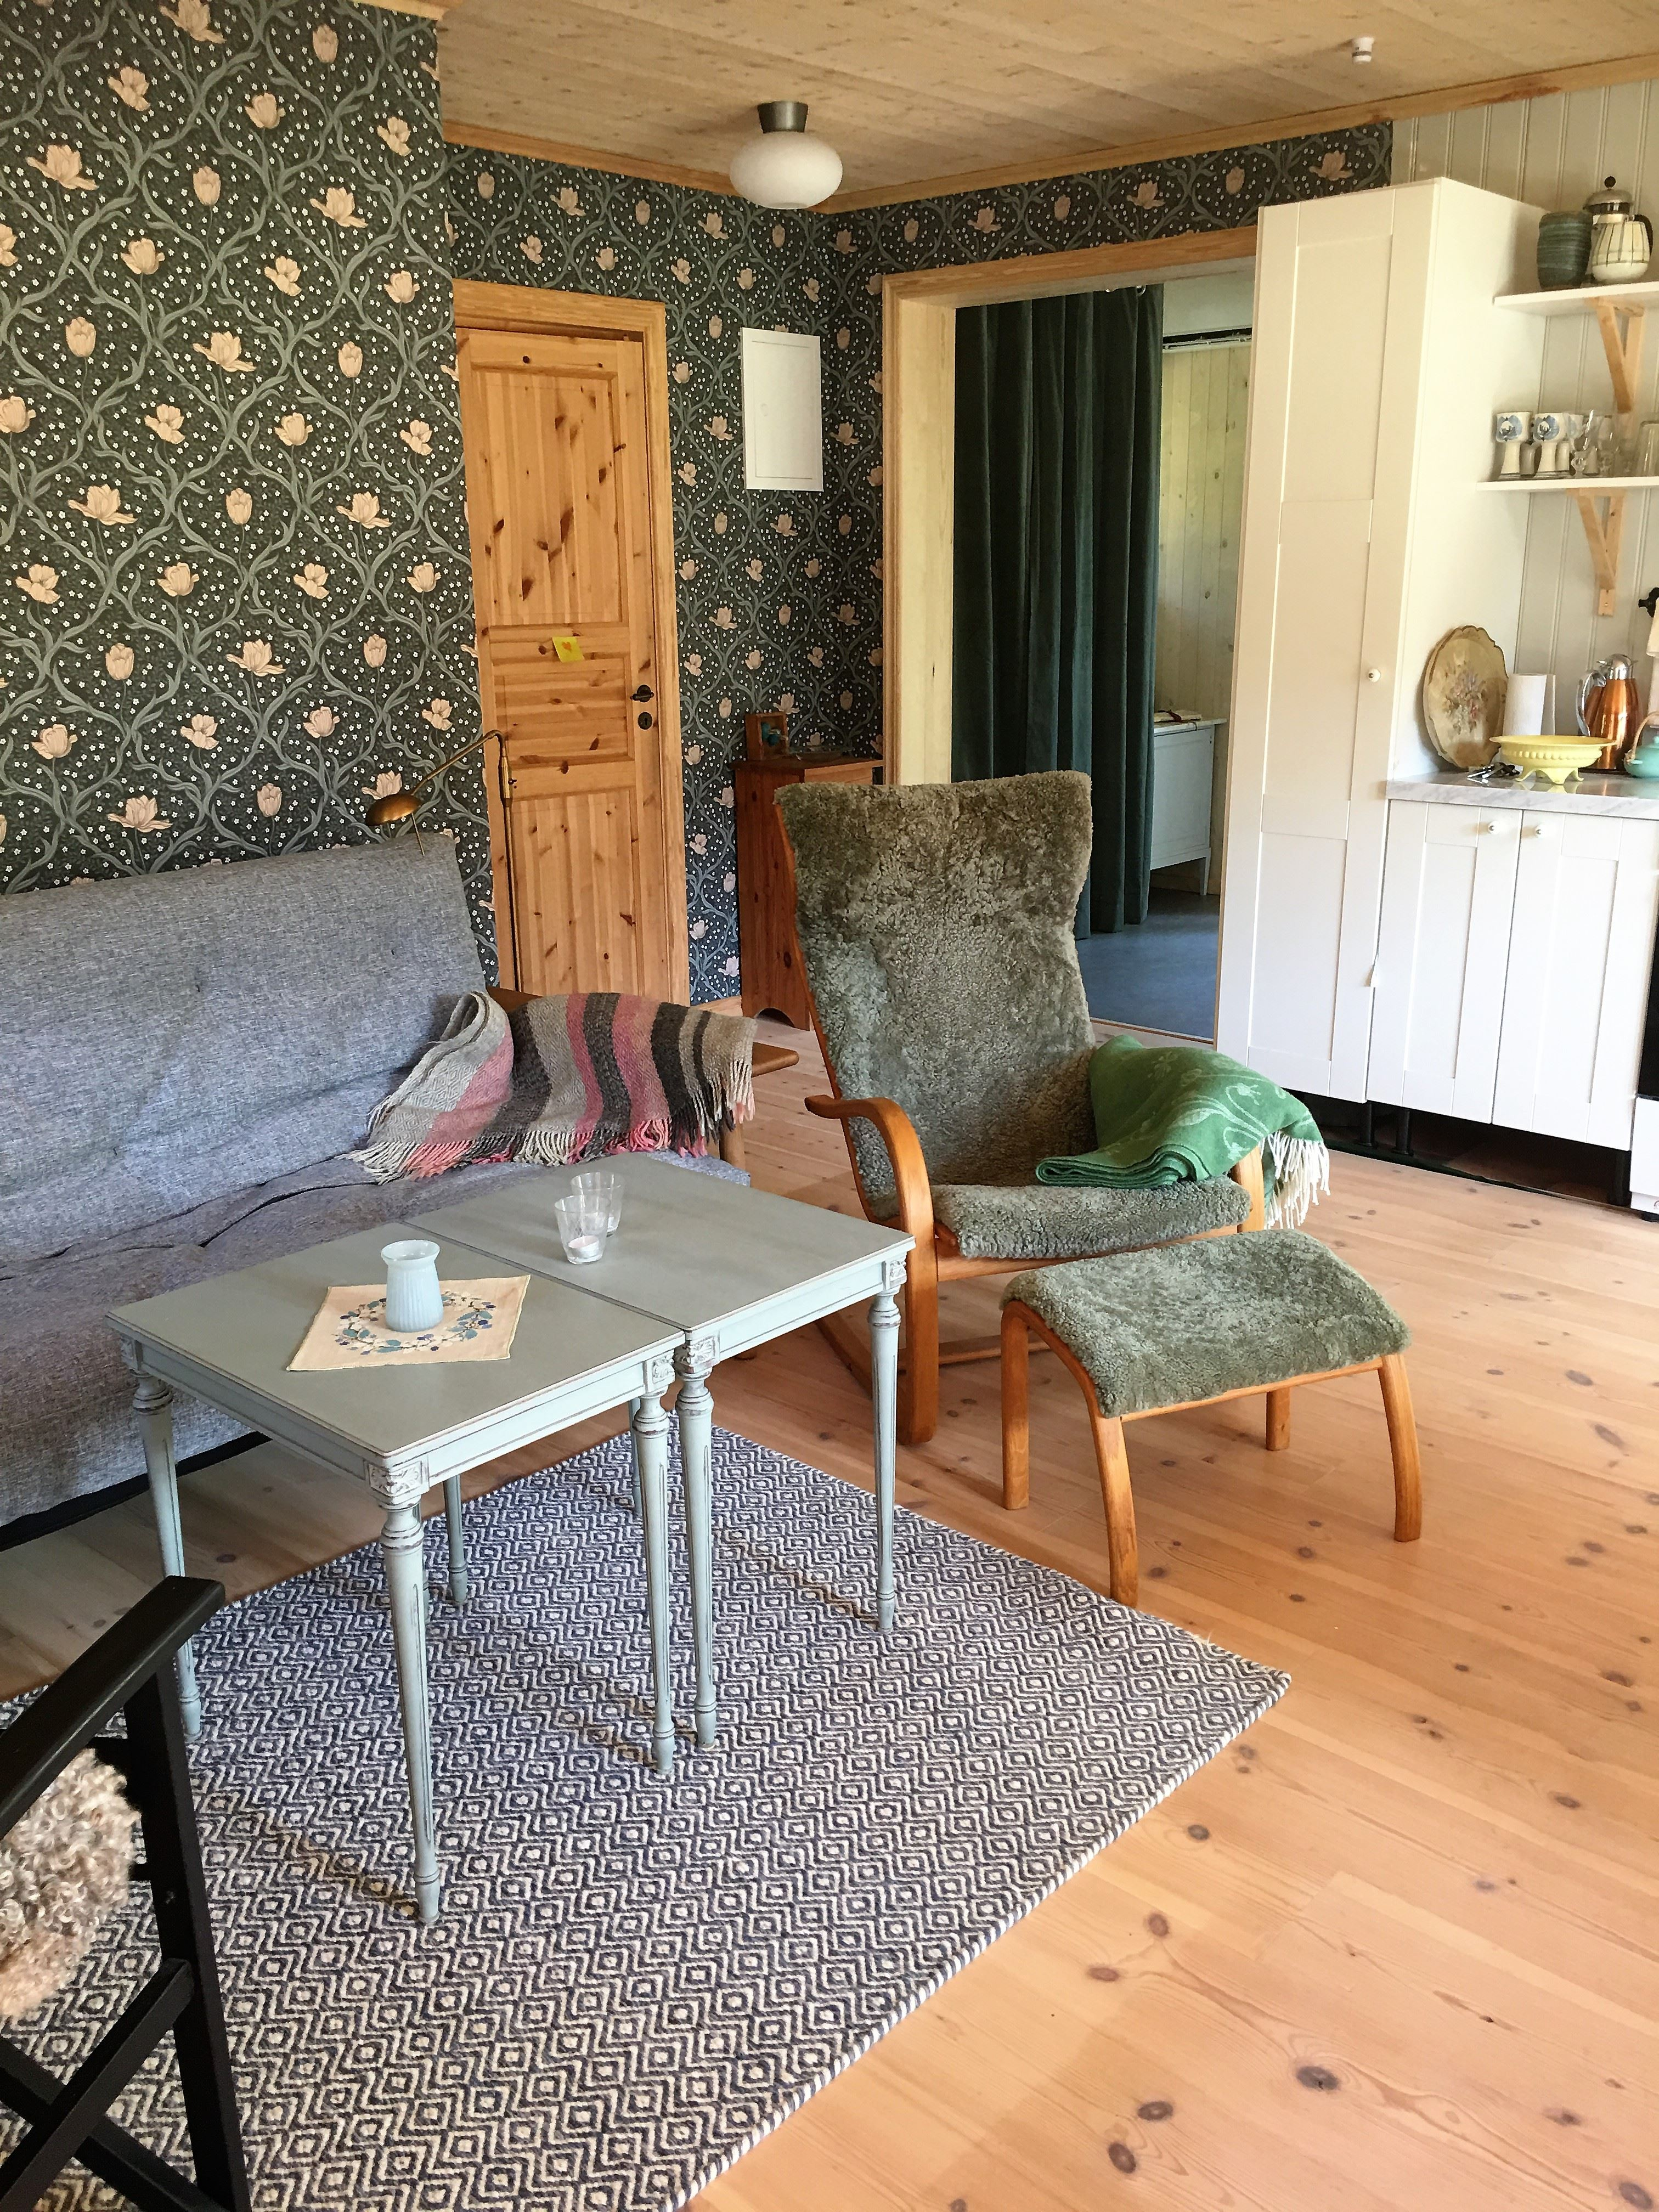 Cottage with 4 beds - Ryssberget